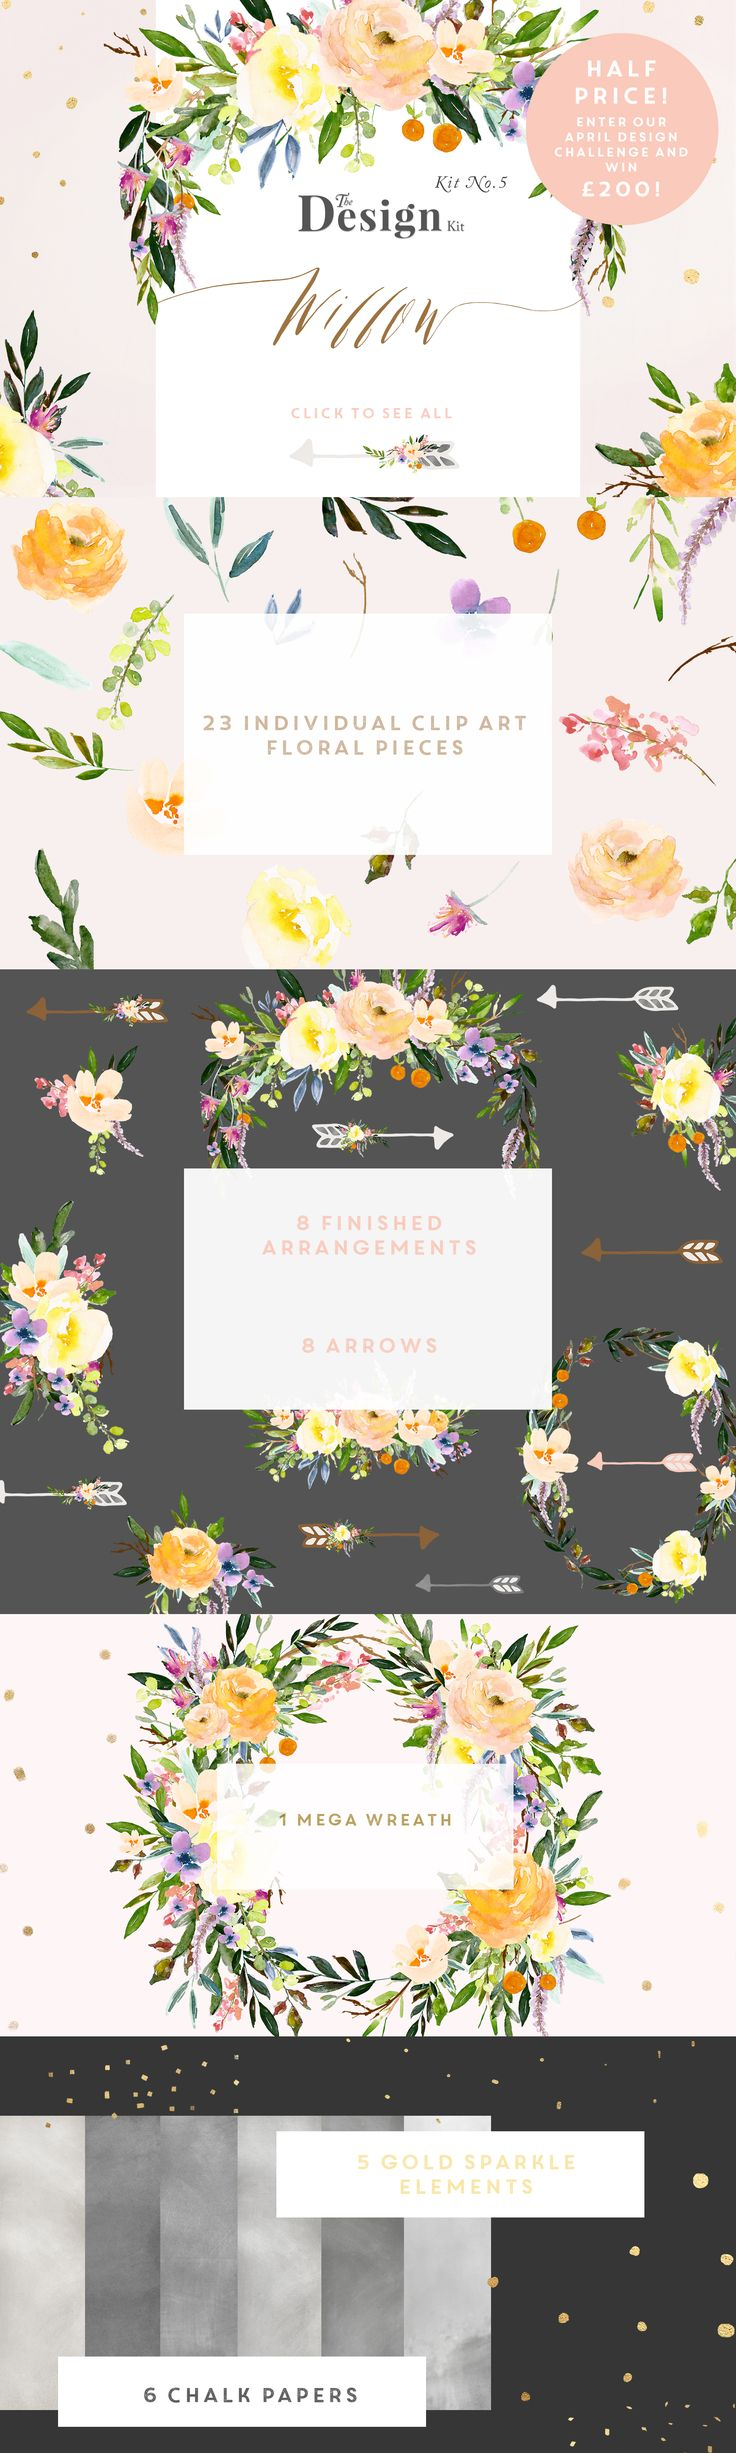 The Design Kit - Willow - 50% Off: The philosophy behind our Design Kits is to…